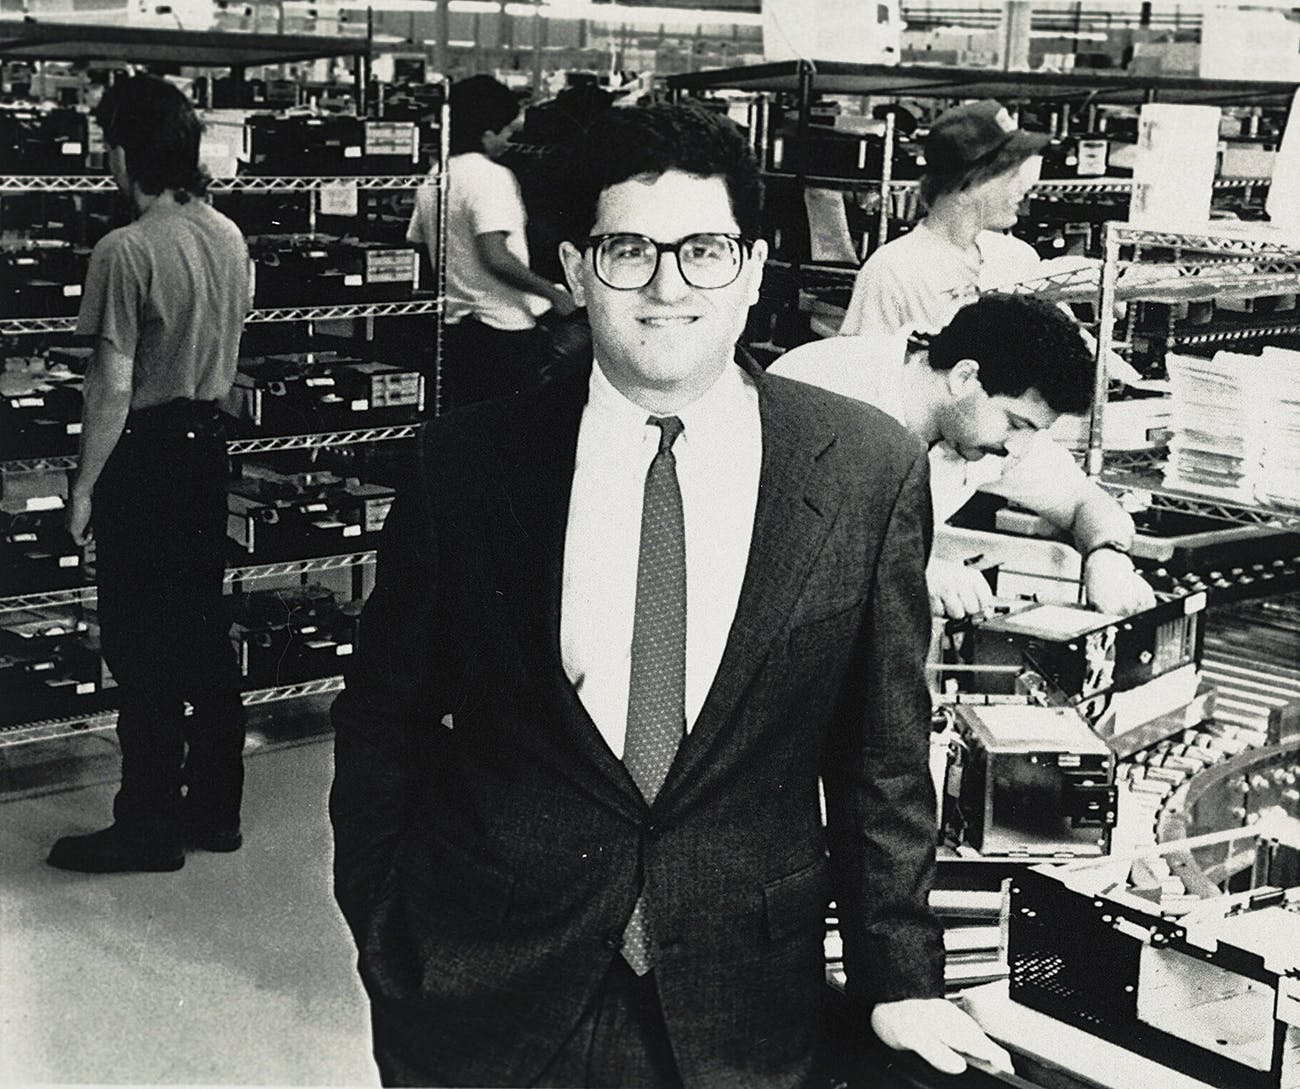 Dell, photographed at his company's production facility in Austin on April 20, 1989.